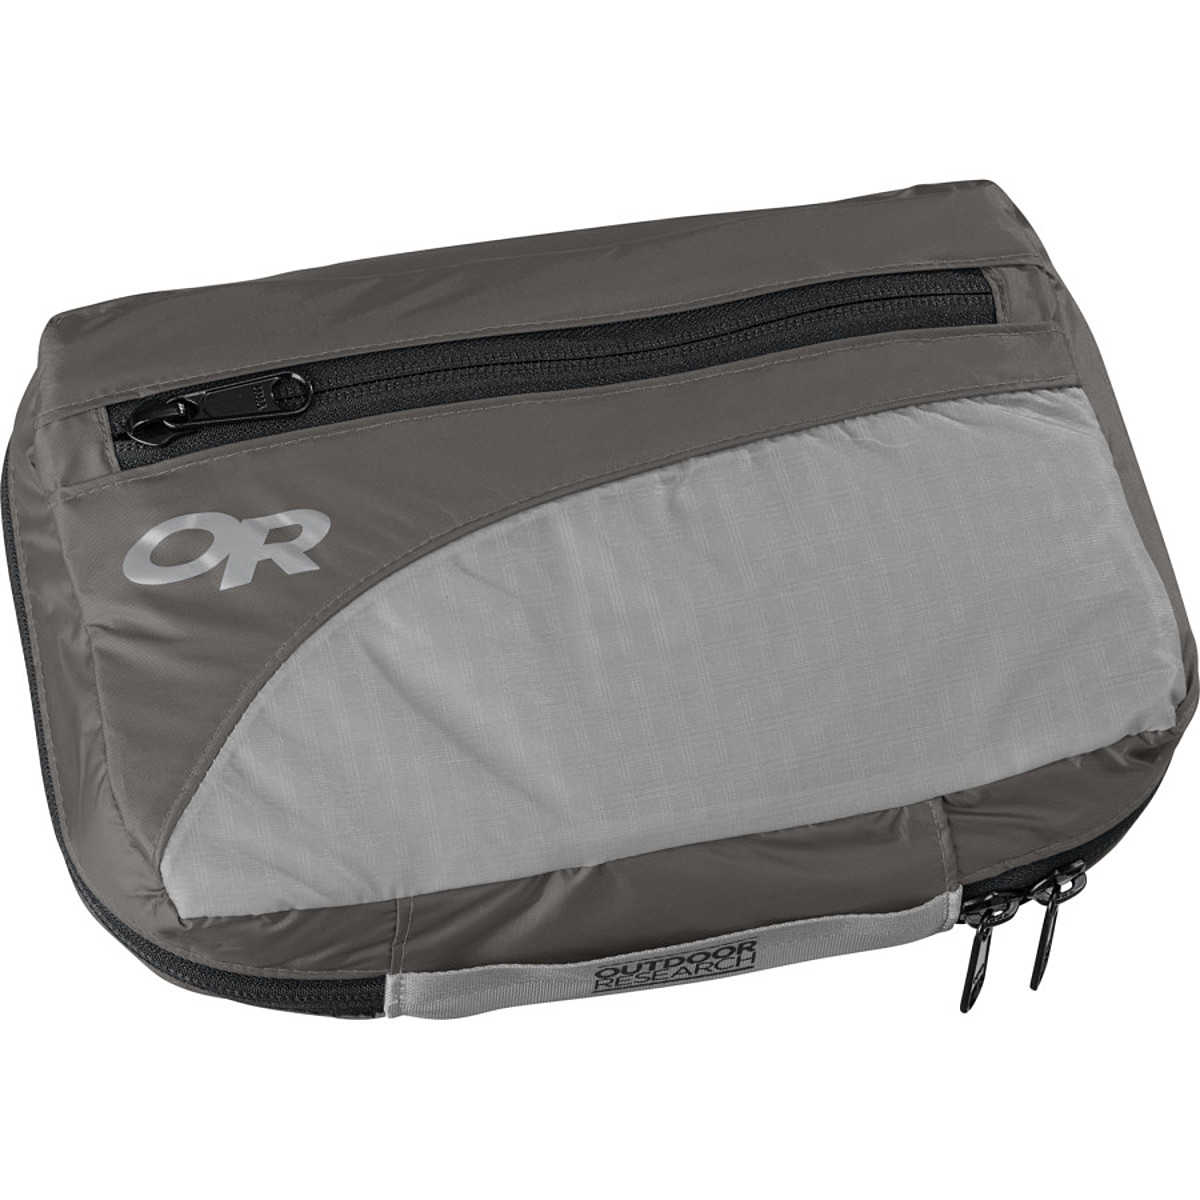 Outdoor Research Backcountry Organizers